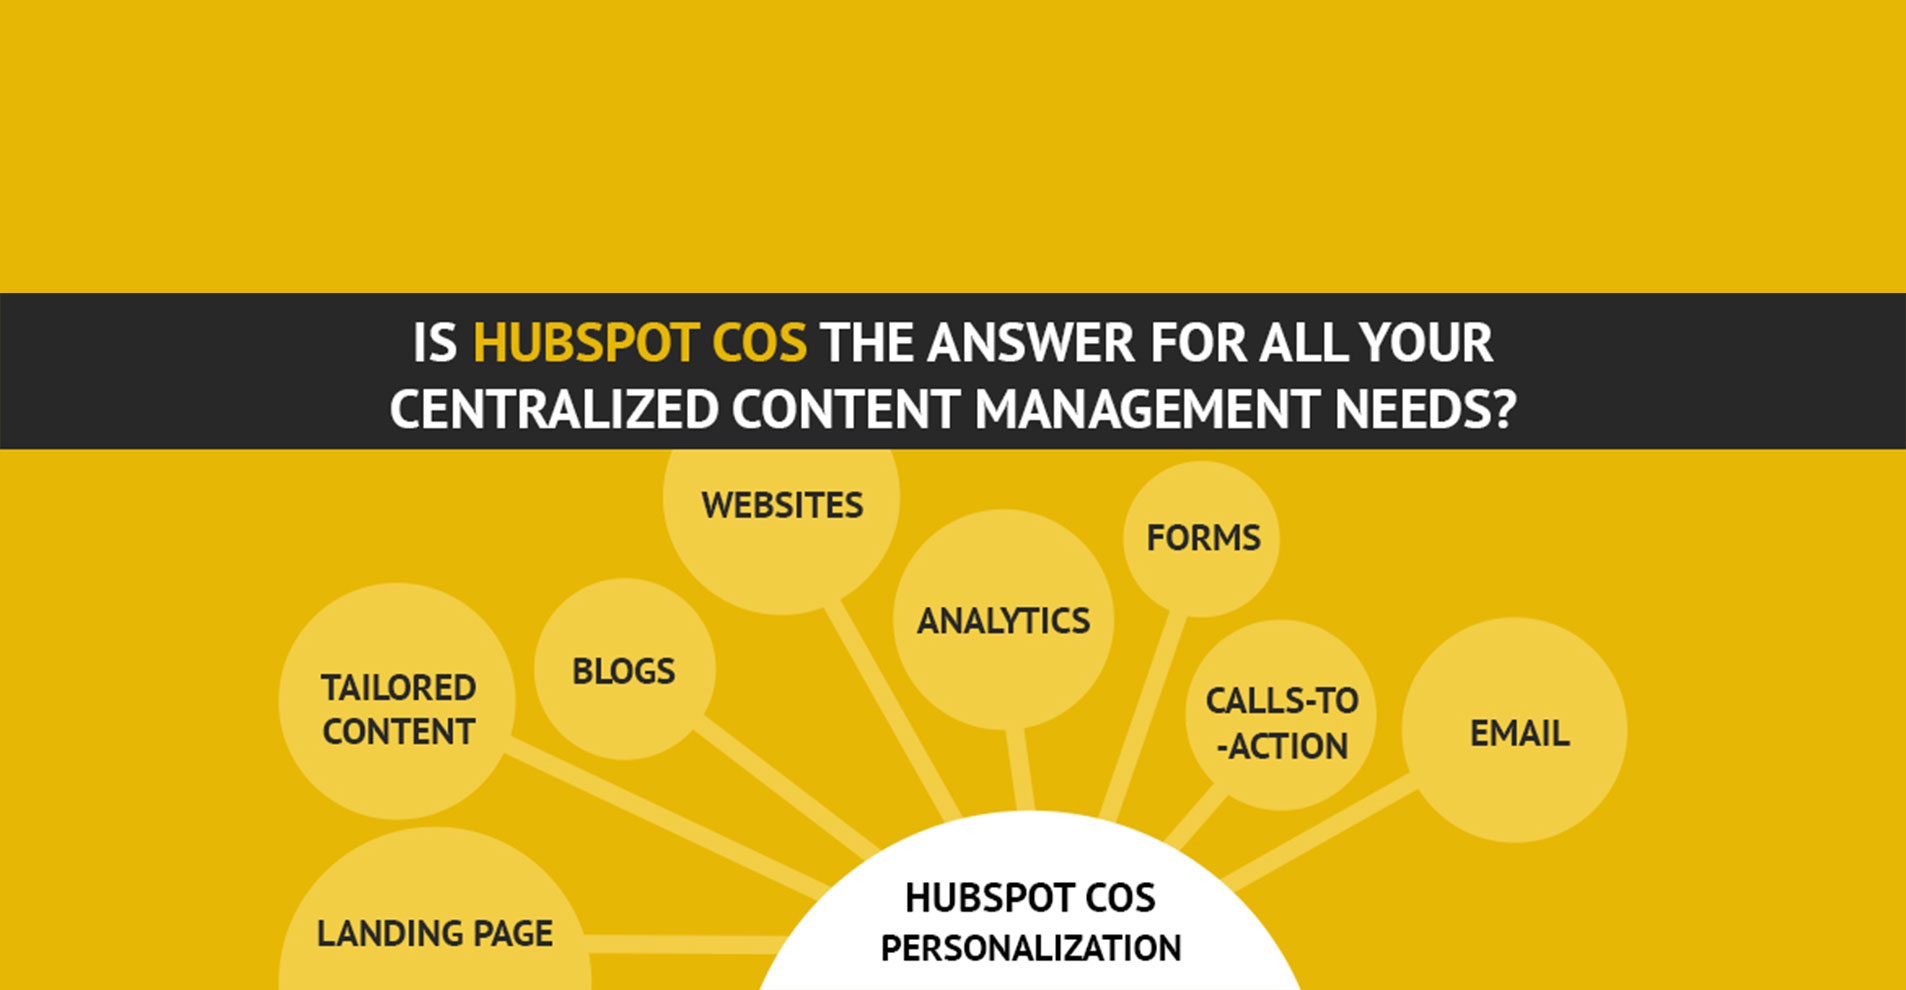 Is Hubspot Coscms The Answer For All Your Centralized Content